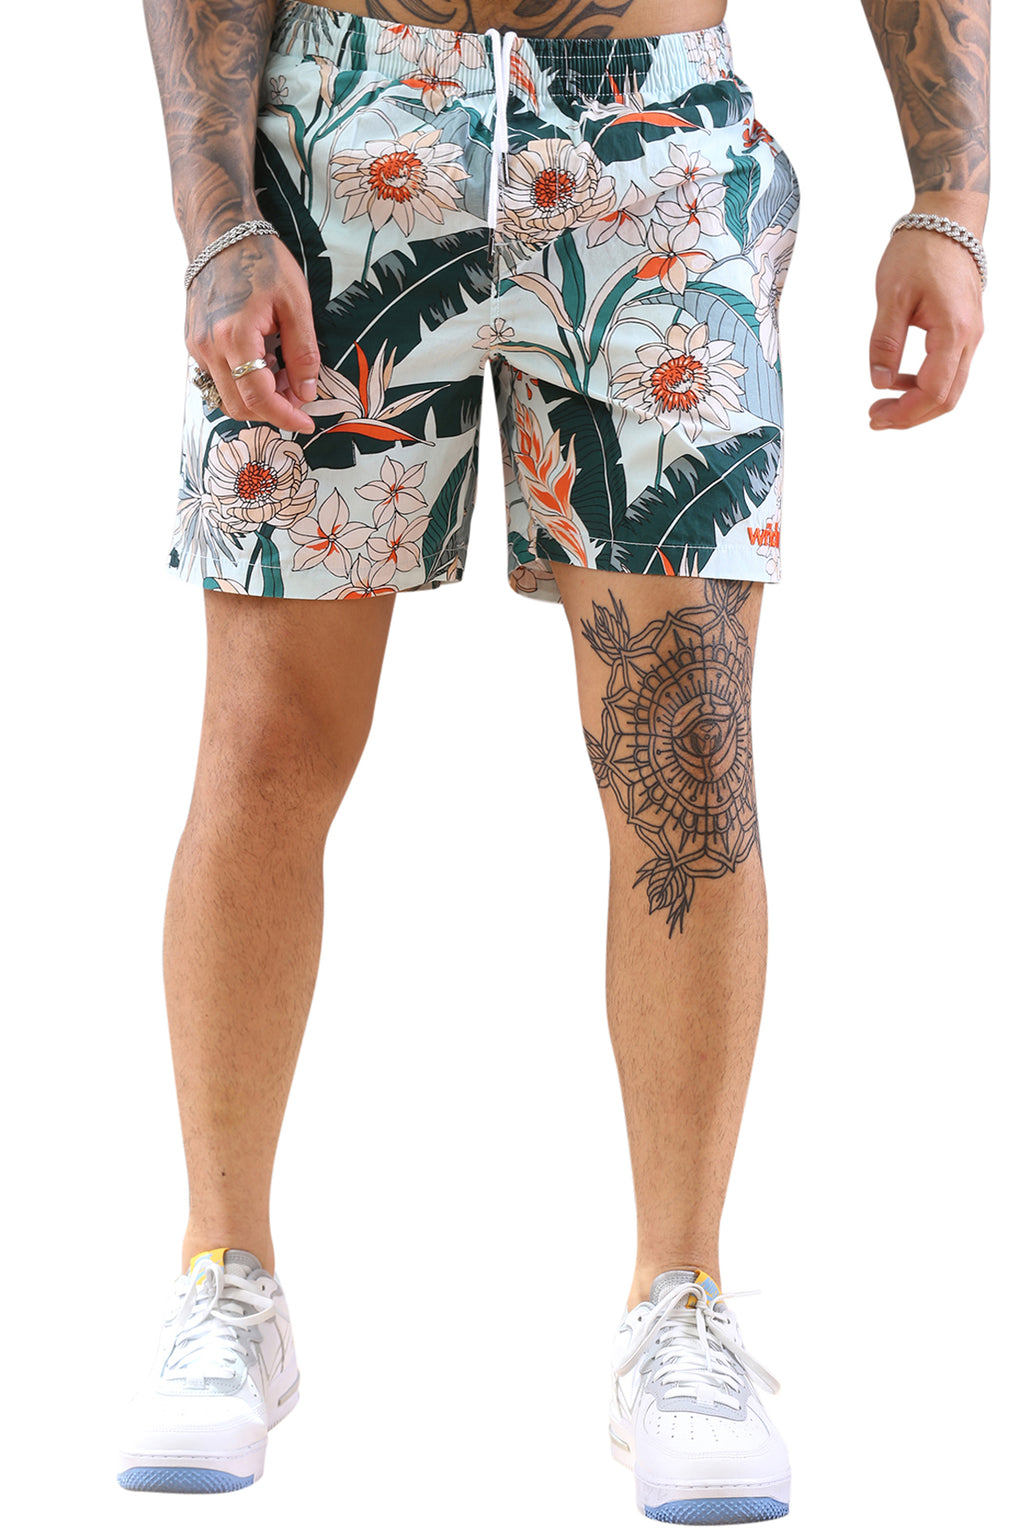 WNDRR Florida Beach Short White